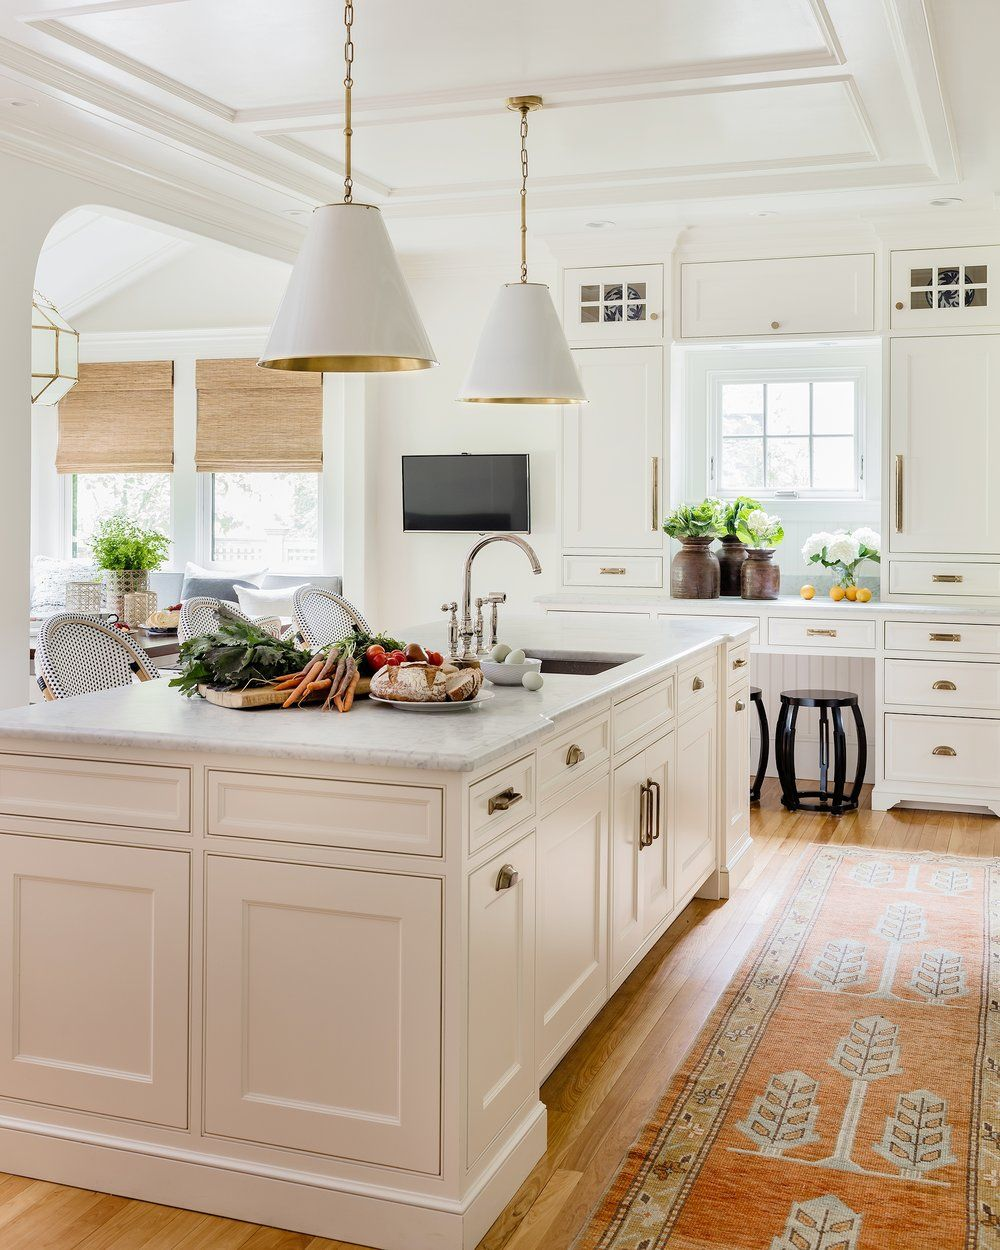 The Cape Cod Ranch Renovation Great Room Continued Kitchen: White Cabinets In This Kitchen With An Antique Turkish